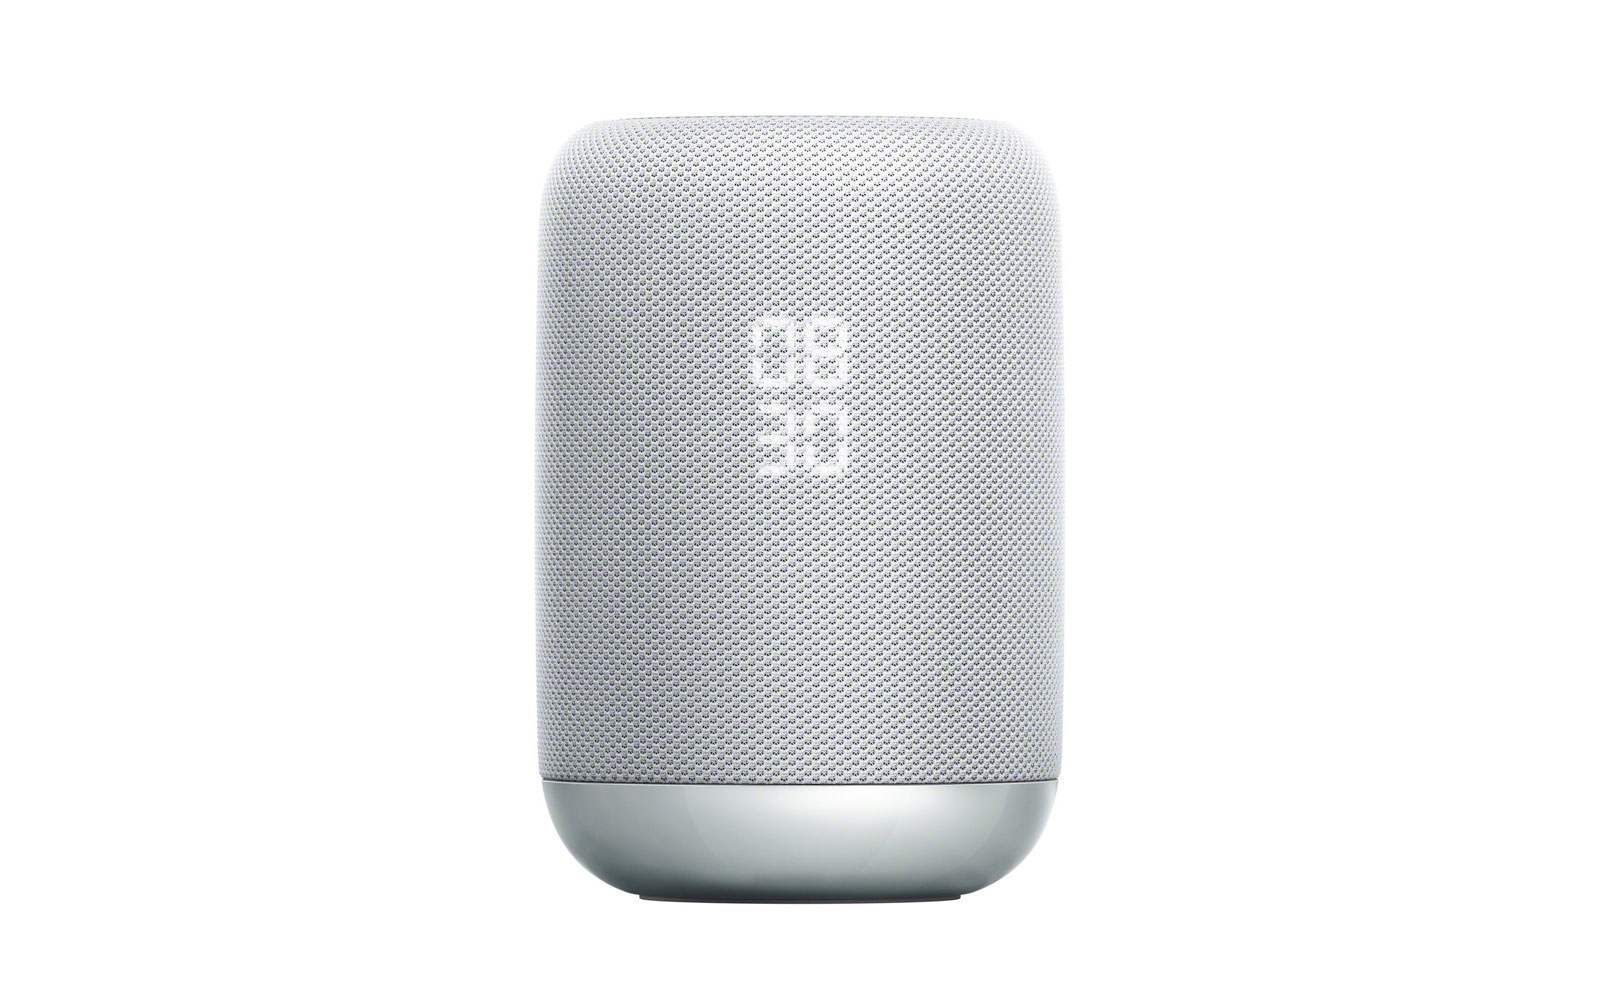 Sony's Speaker Looks Like HomePod, Works Like Google Home